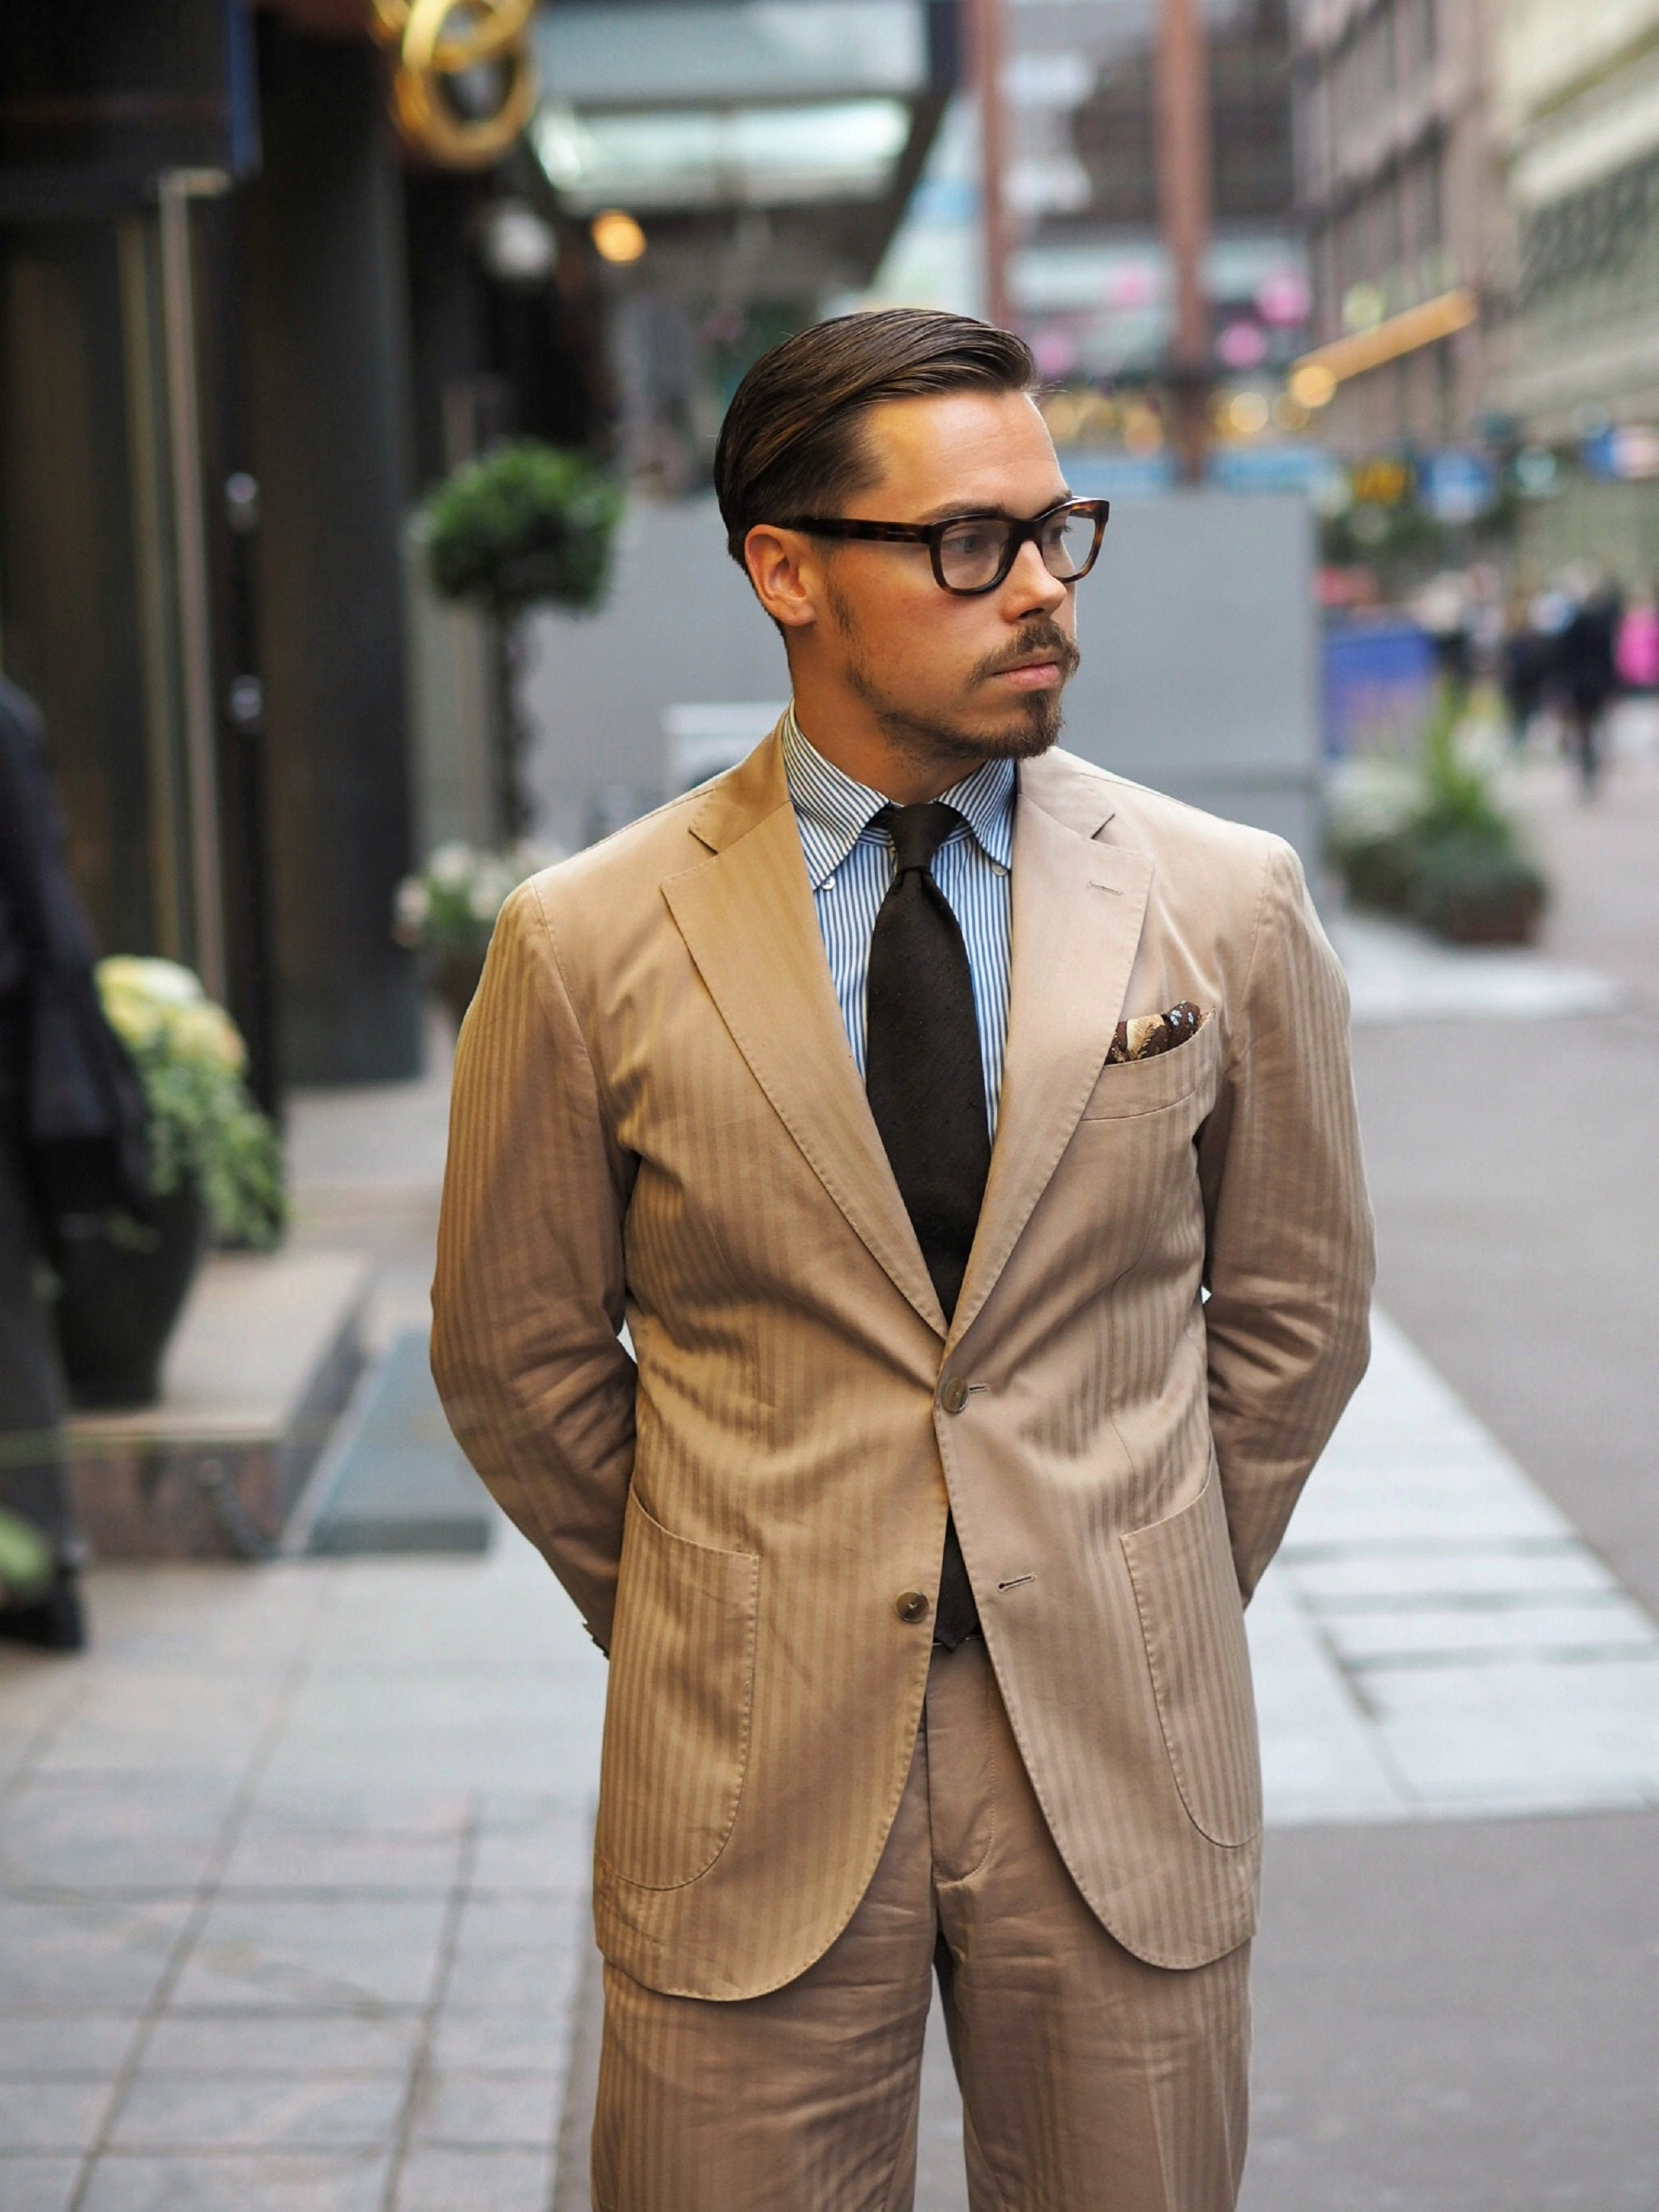 Cotton solaro suit with a brown shantung tie - appropriate for casual office days